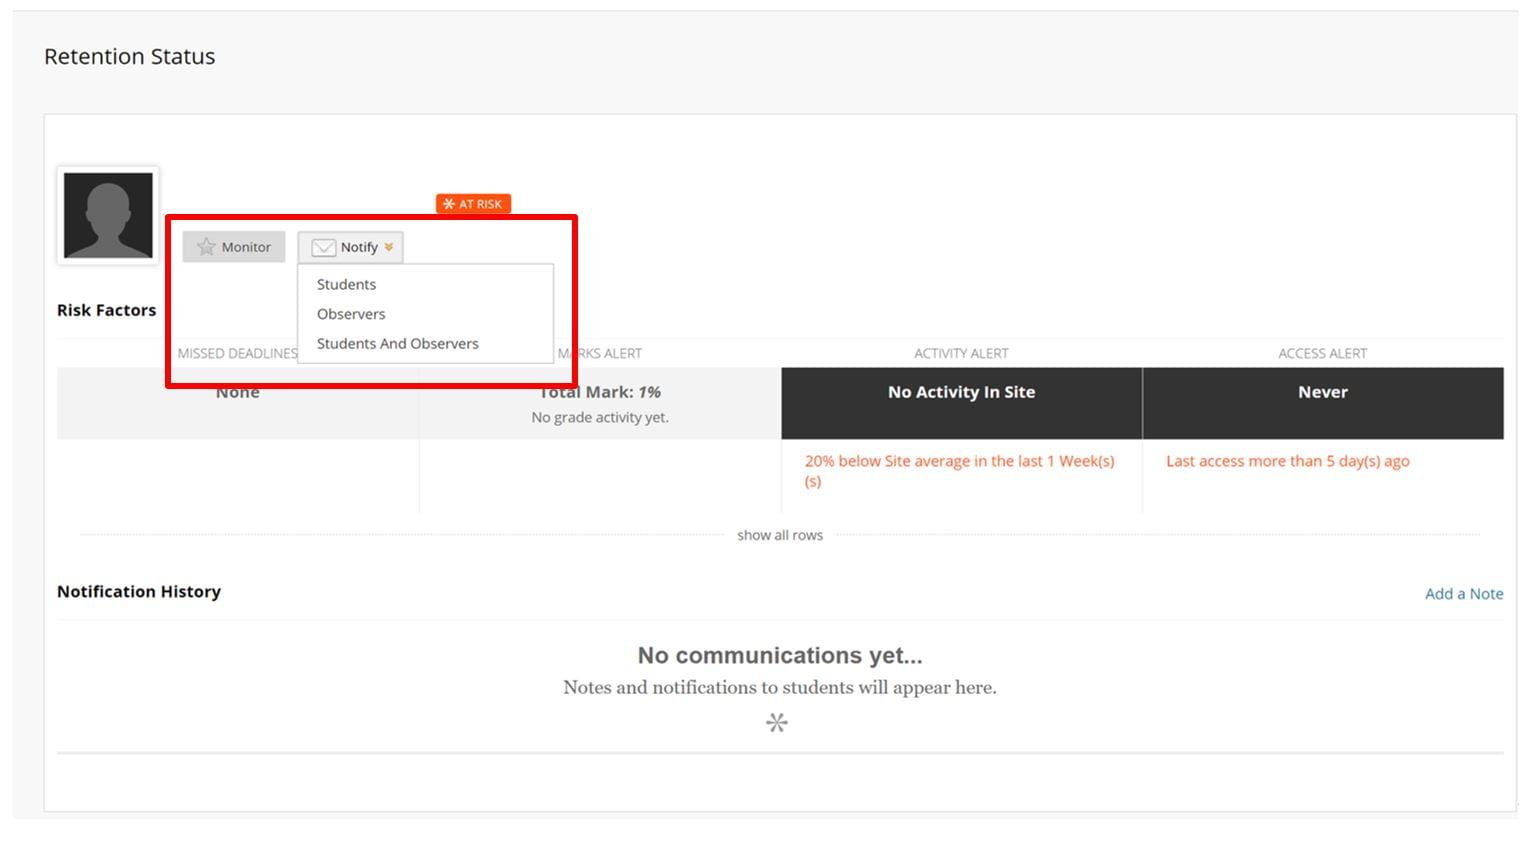 Screenshot of a student's Retention Status. A red box indicates that you can notify the student that you have concerns from within the tool. It also shows a notification history.